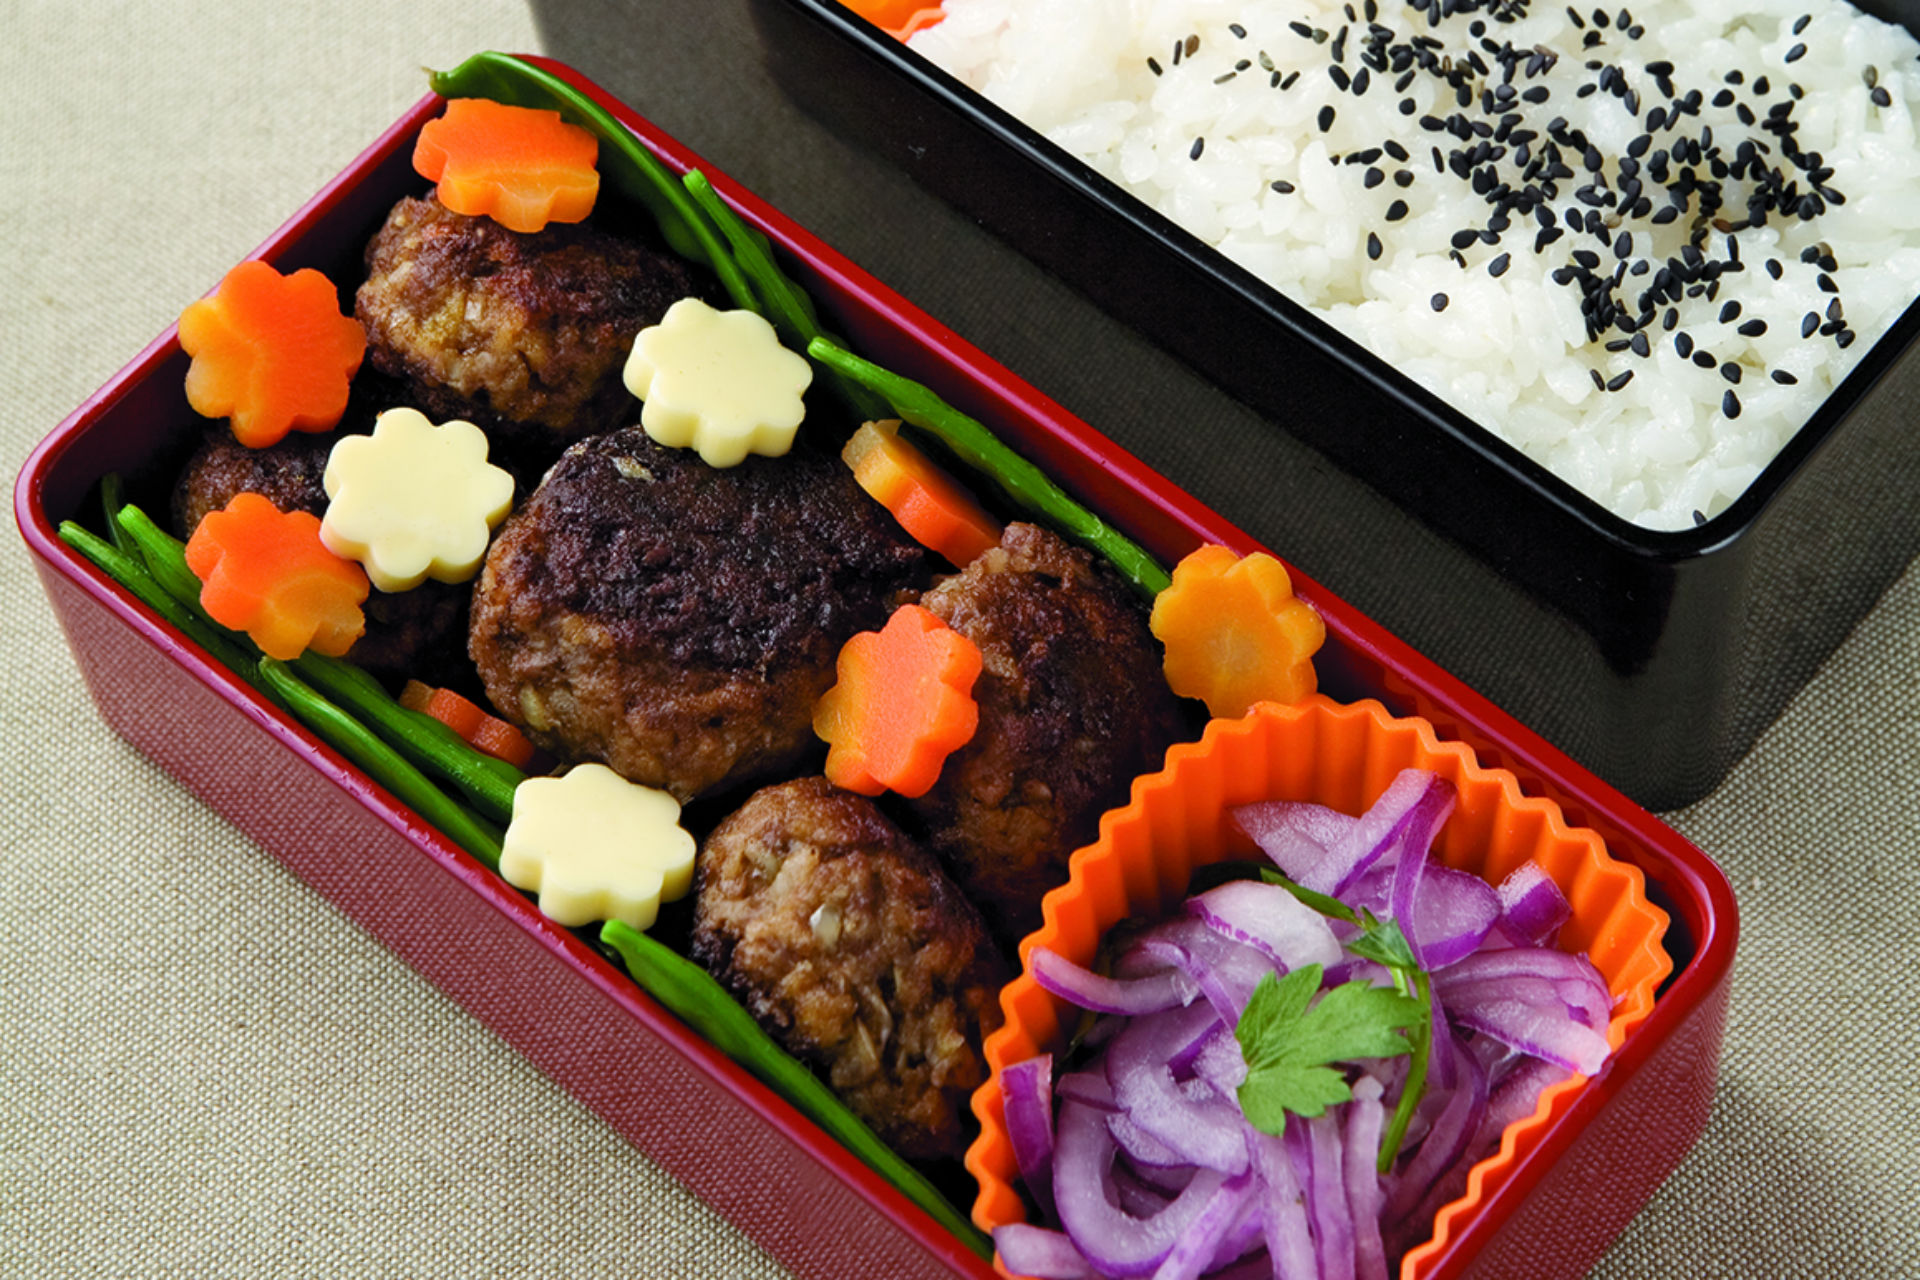 bento box with mini hamburger meatballs, rice, veggies